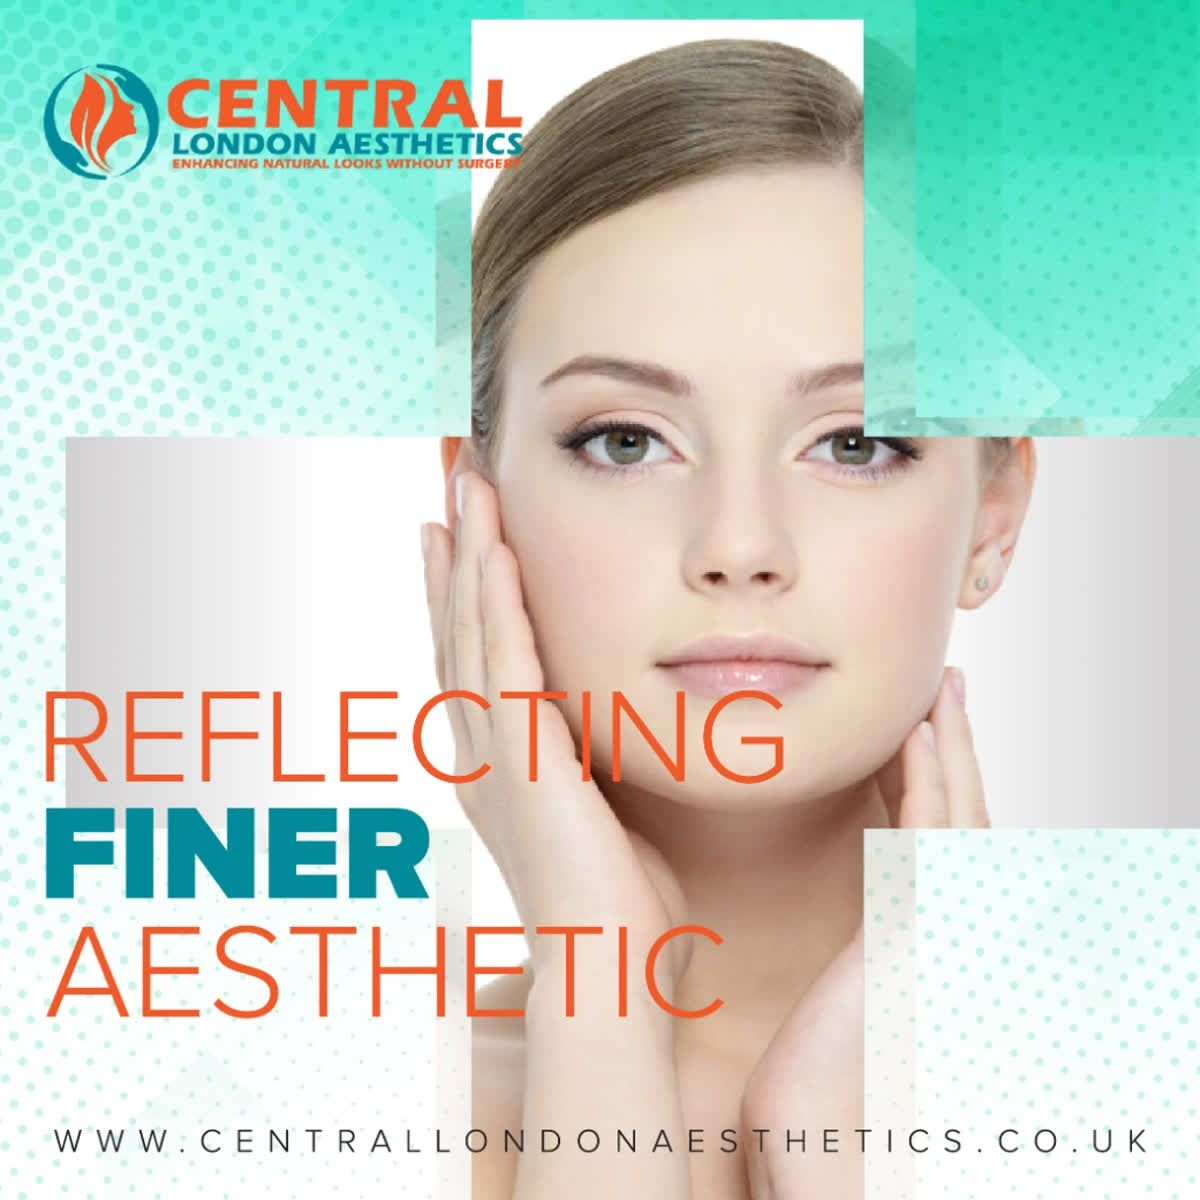 At Central London Aesthetics Nonsurgical nose job gives amazing